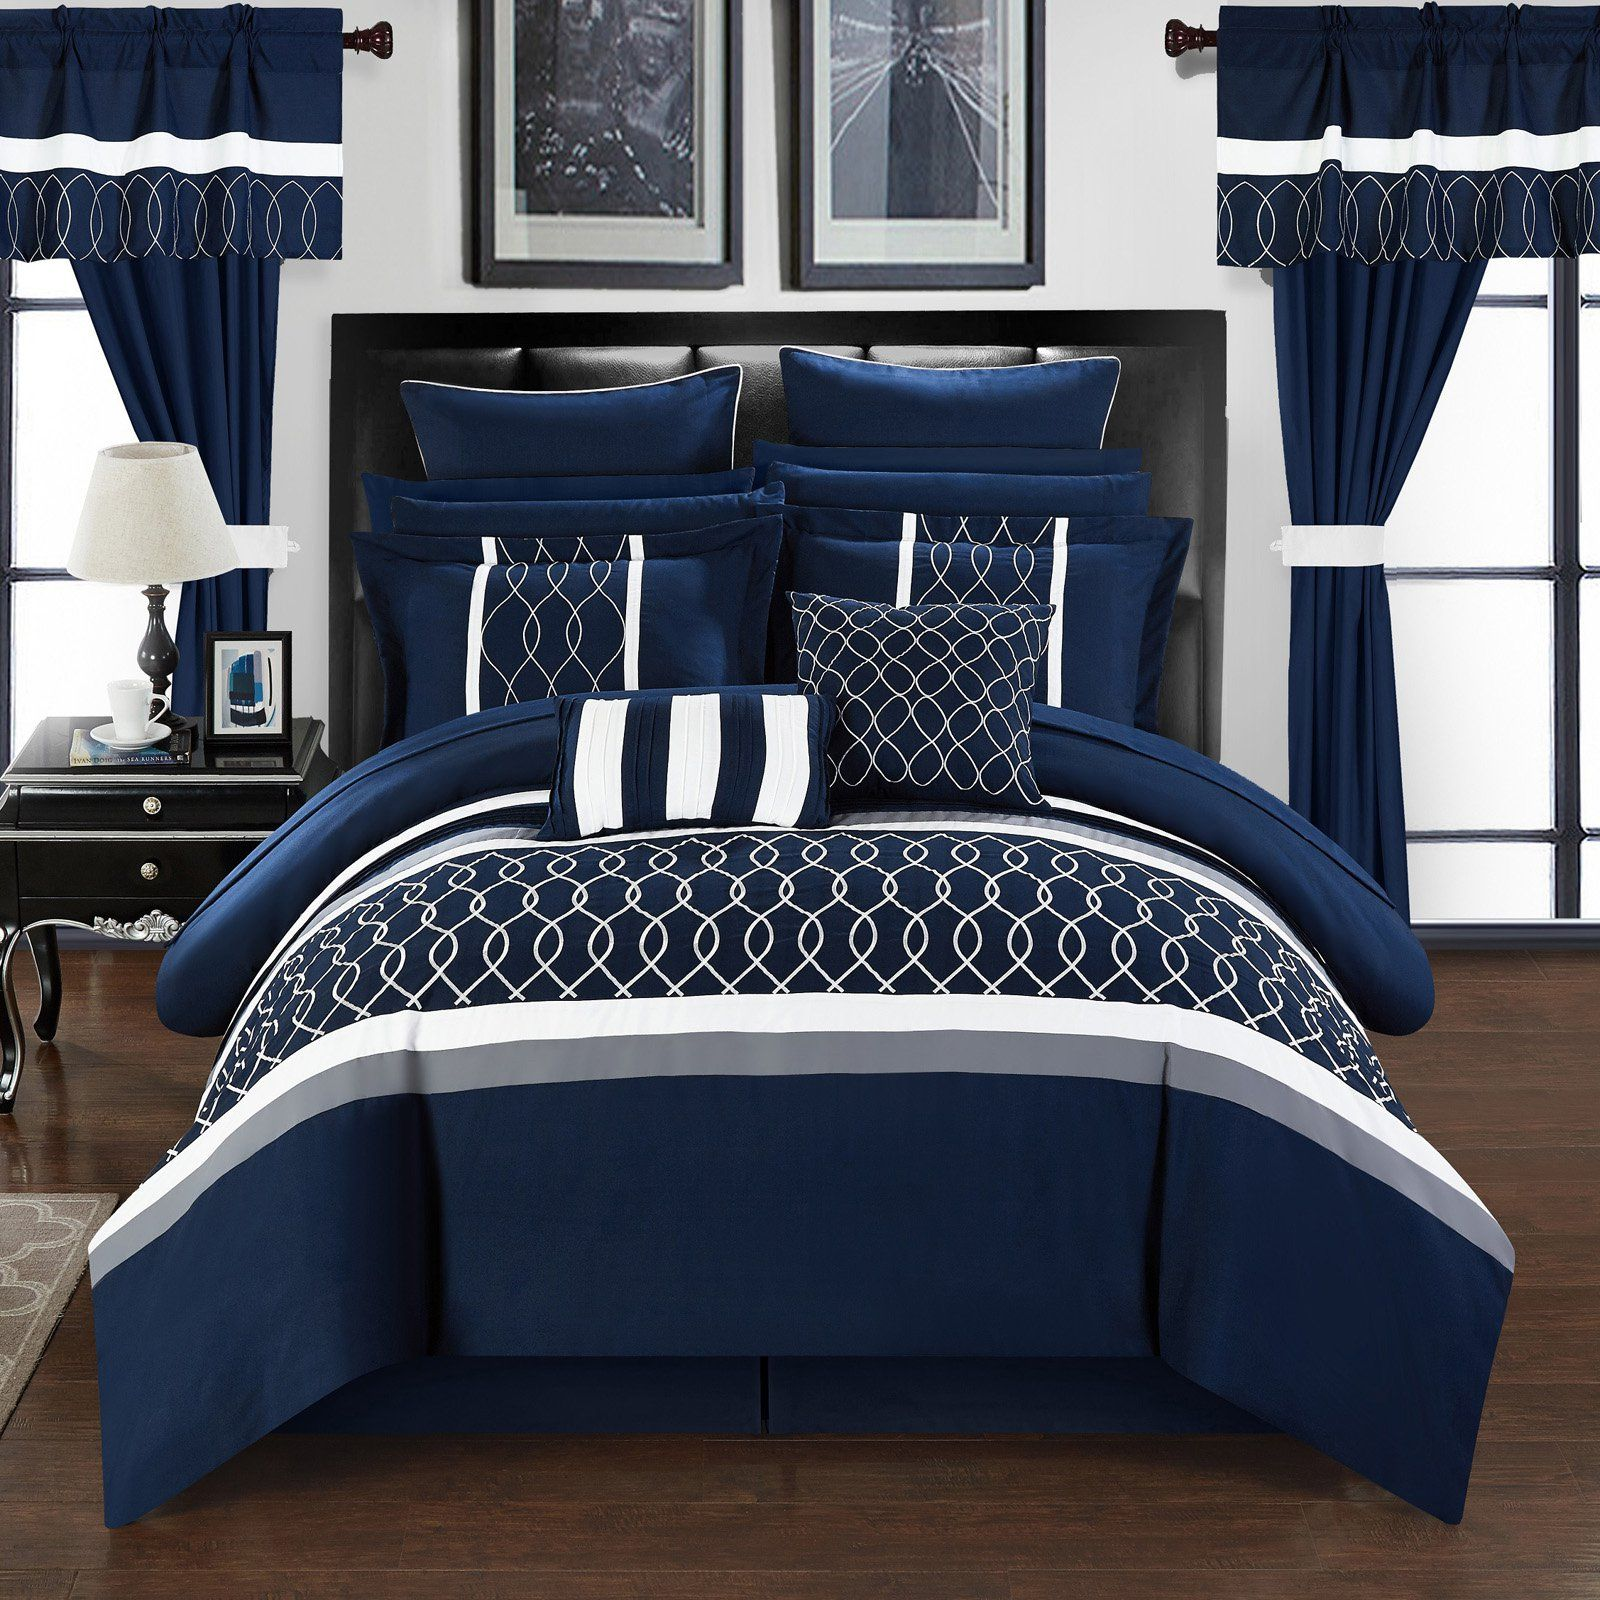 Lance 24-Piece Bed In a Bag Queen Comforter Set by Chic Home ...